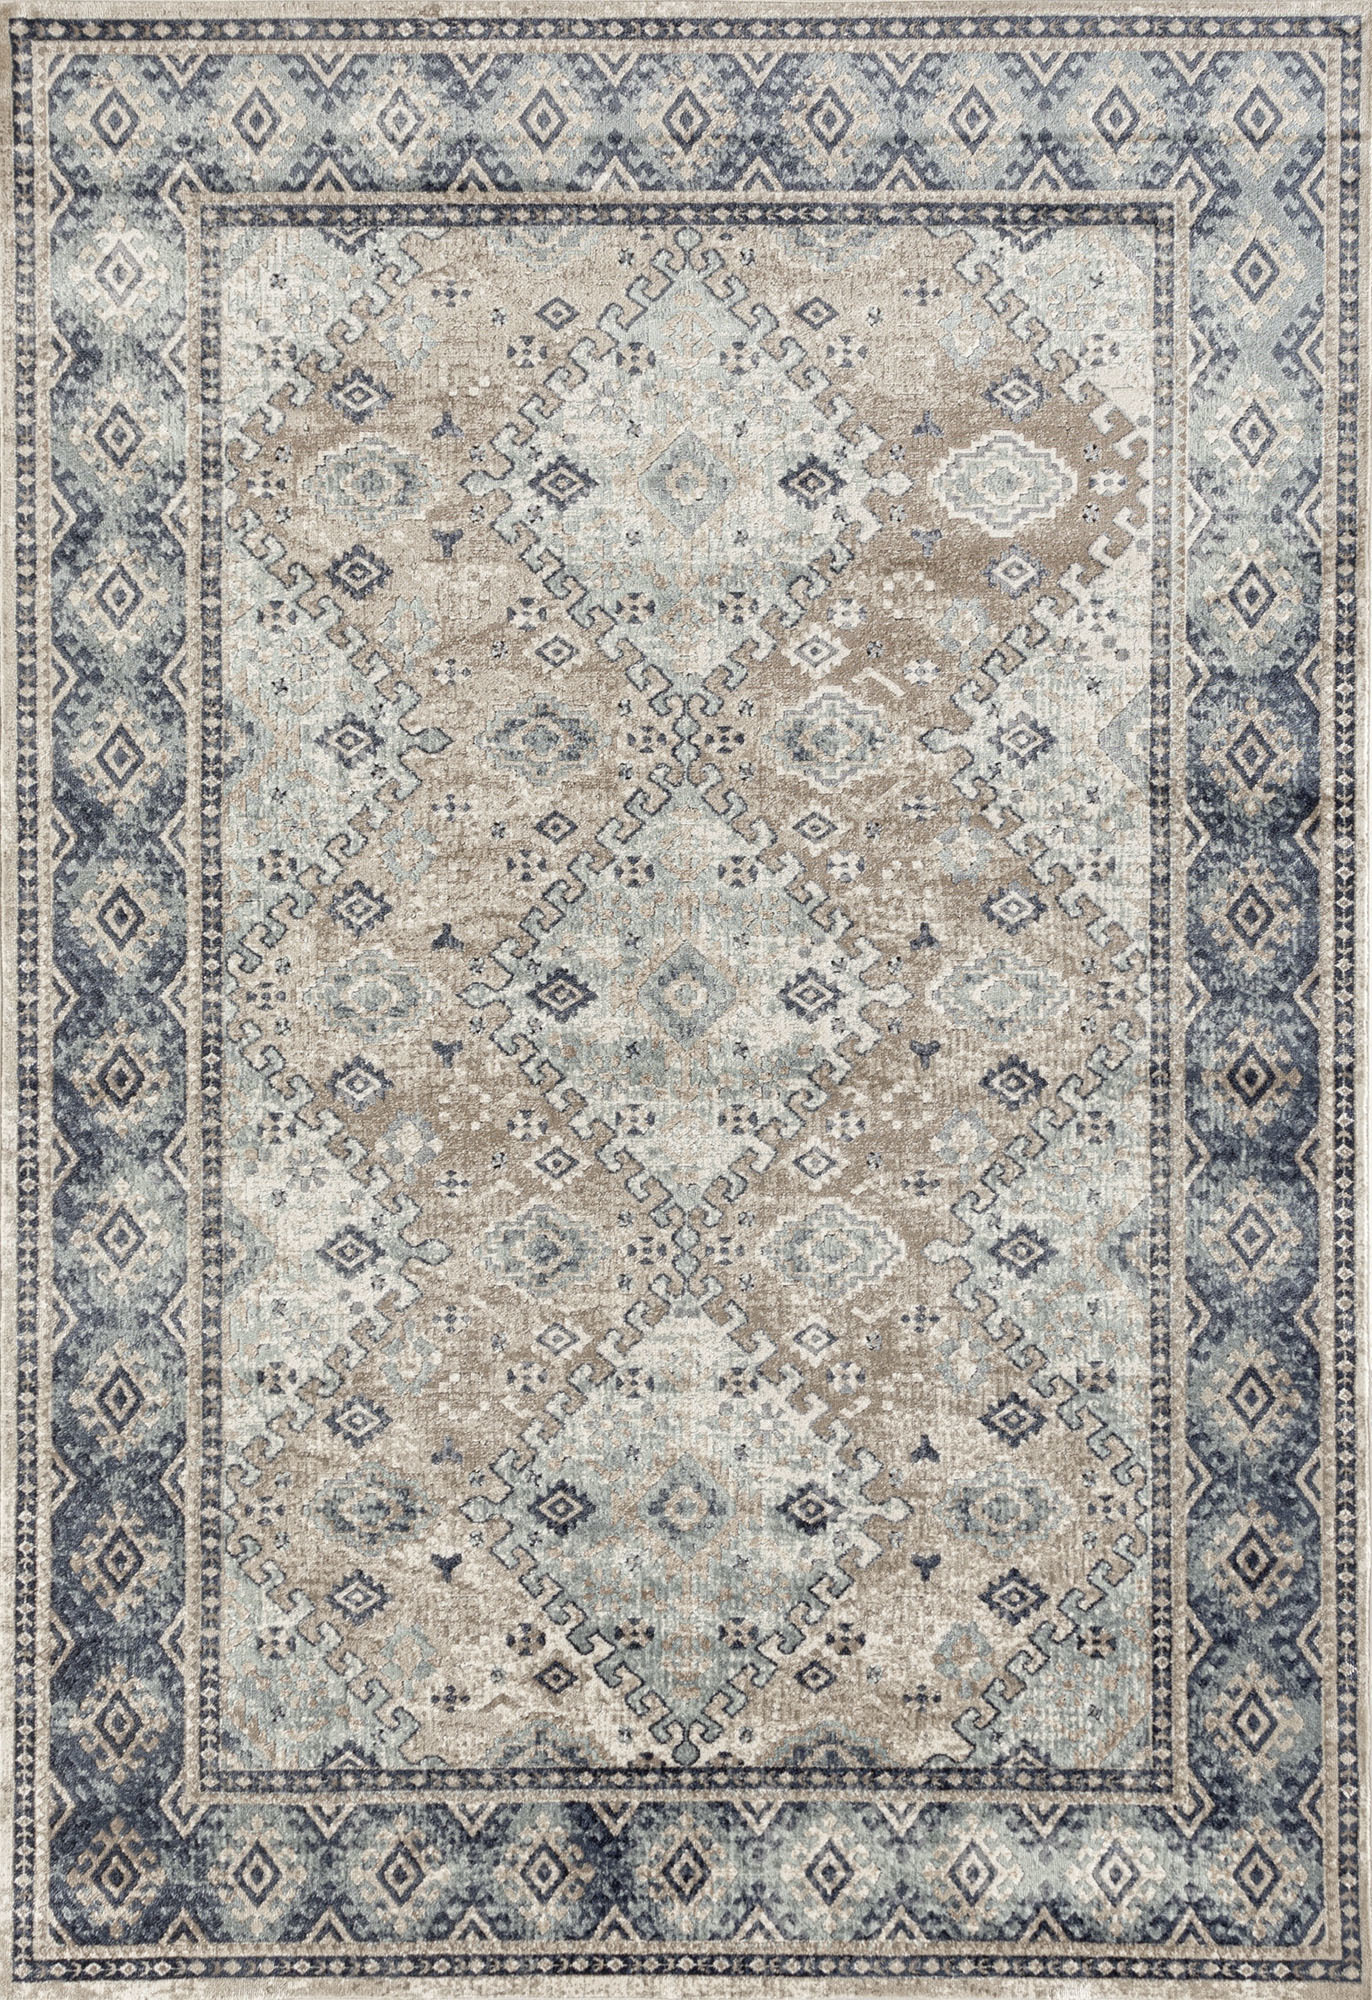 bba6f41f96 SKU #NETW7064 Vannessa Navy, Cream & Beige Chenille Cotton Modern Rug is  also sometimes listed under the following manufacturer numbers:  PVD-831-BEI-230X160 ...